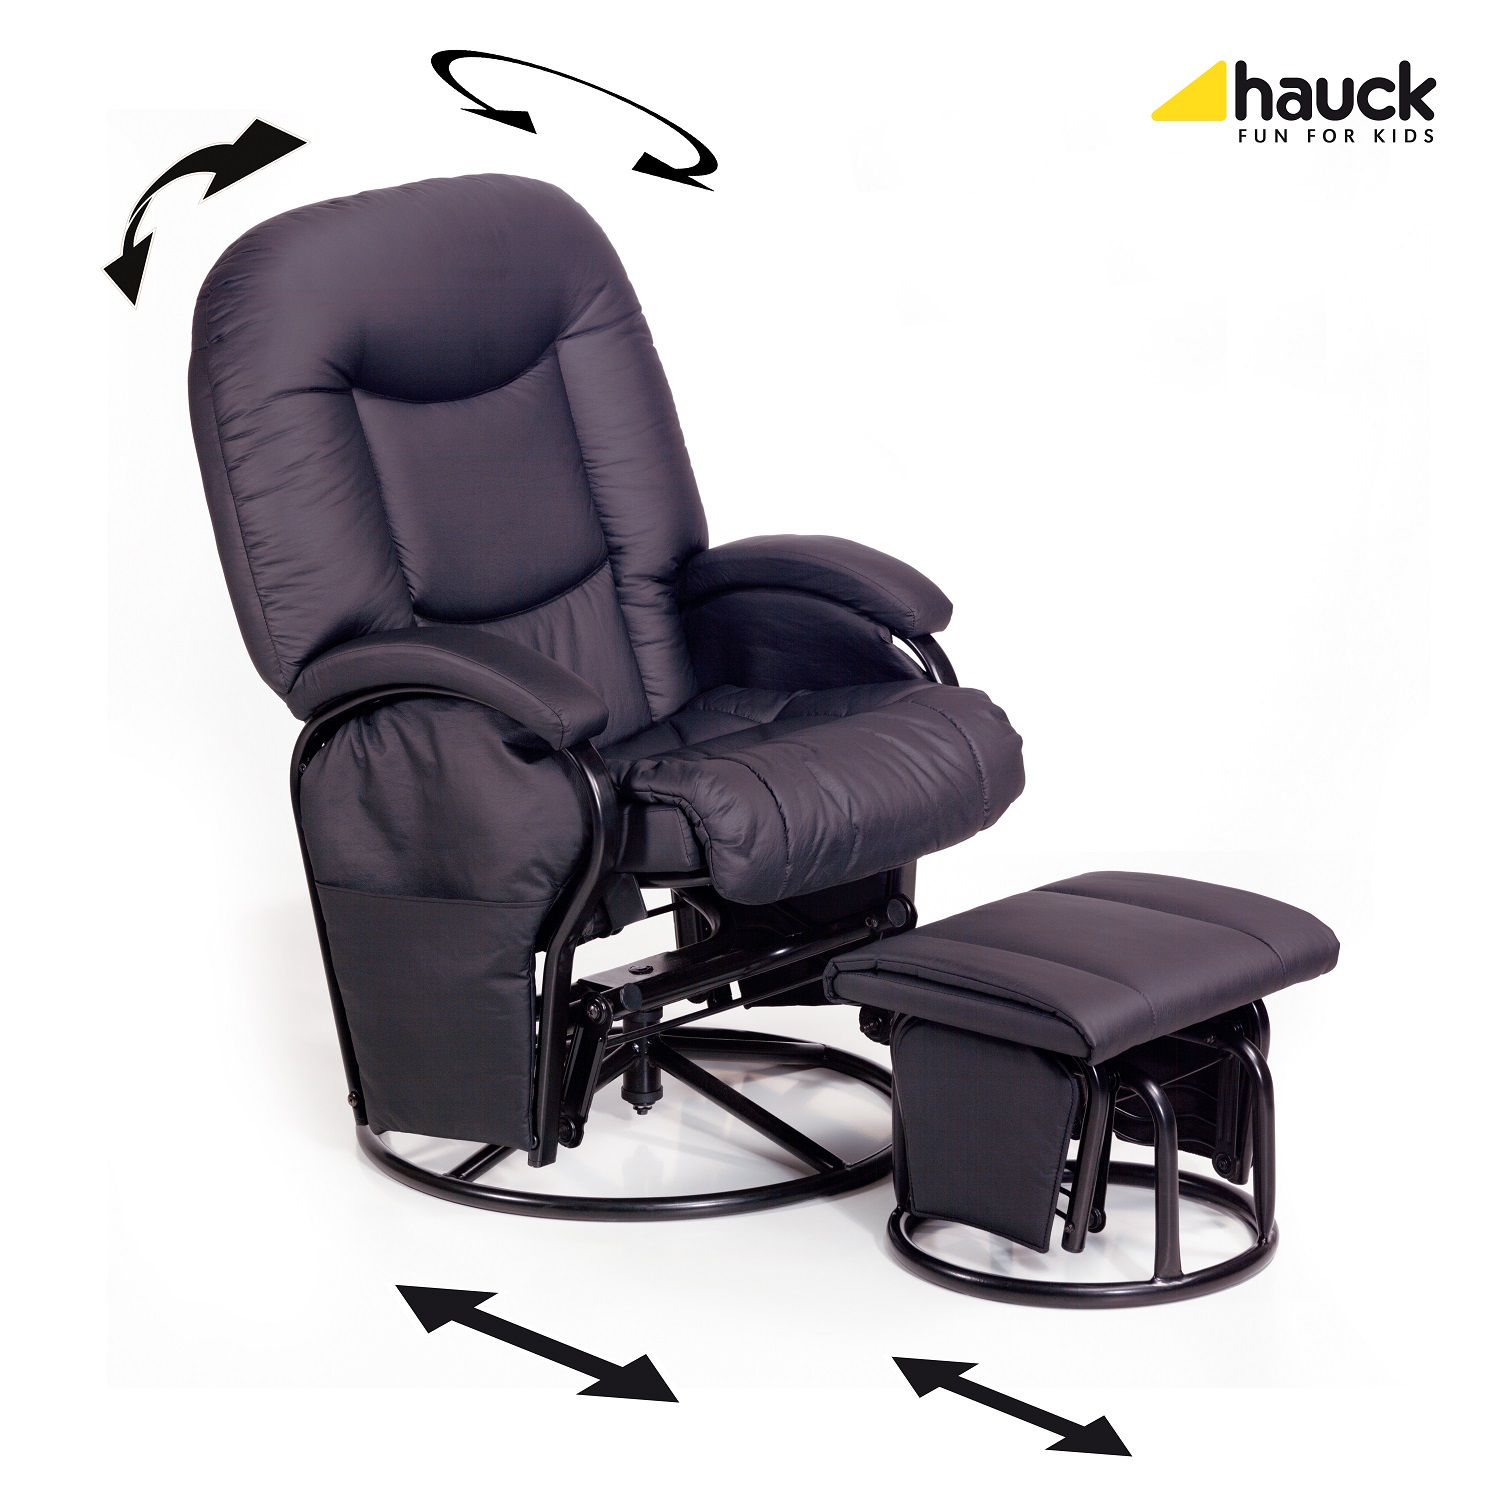 Hauck Nursing and relaxing chair Metal Glider Recline 2018 Black